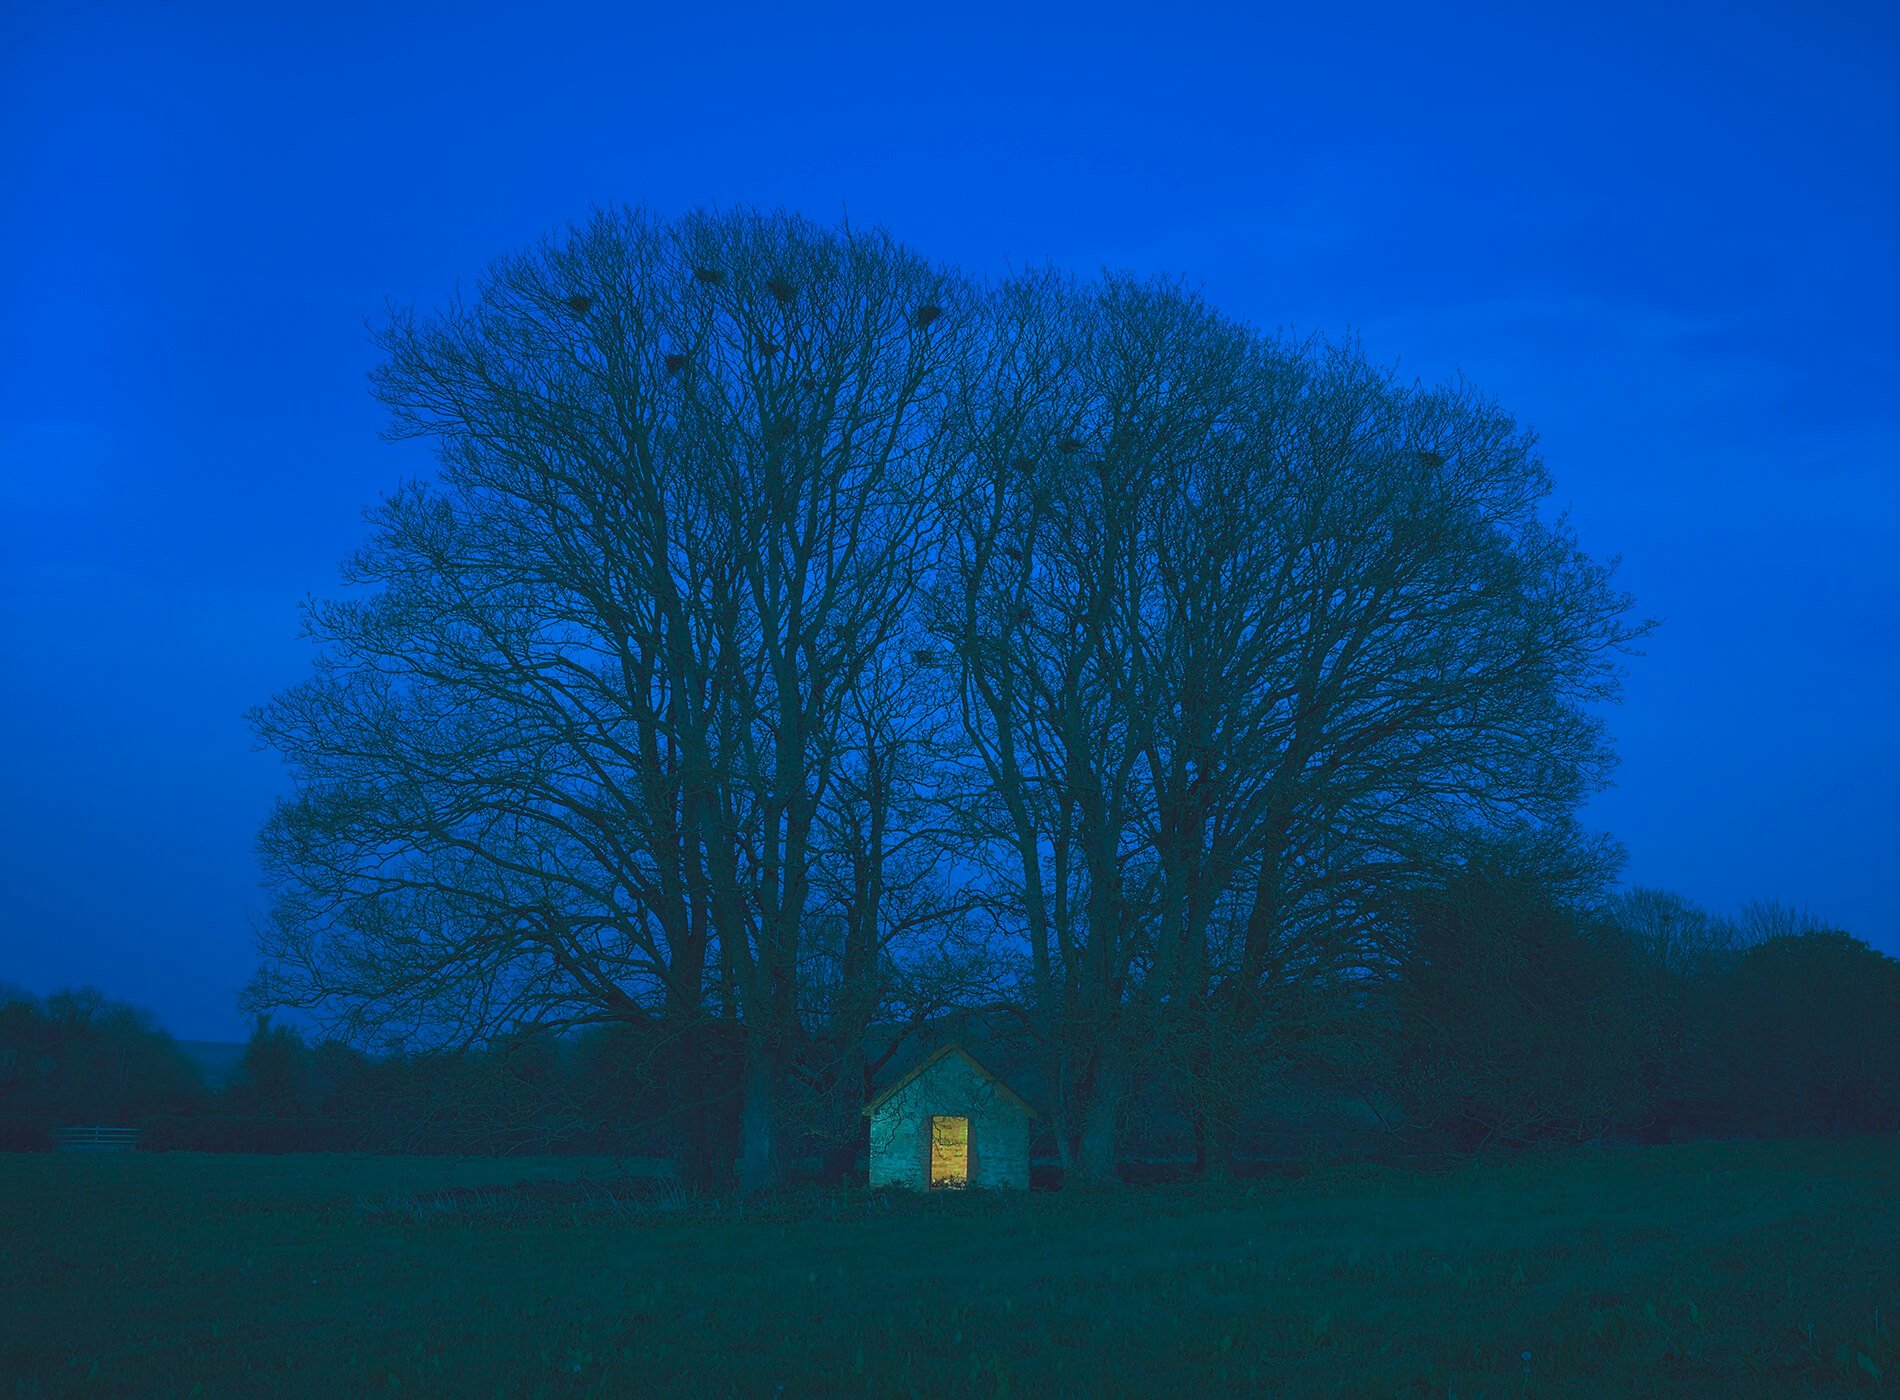 The Little Changing Hut by Judith Jones.